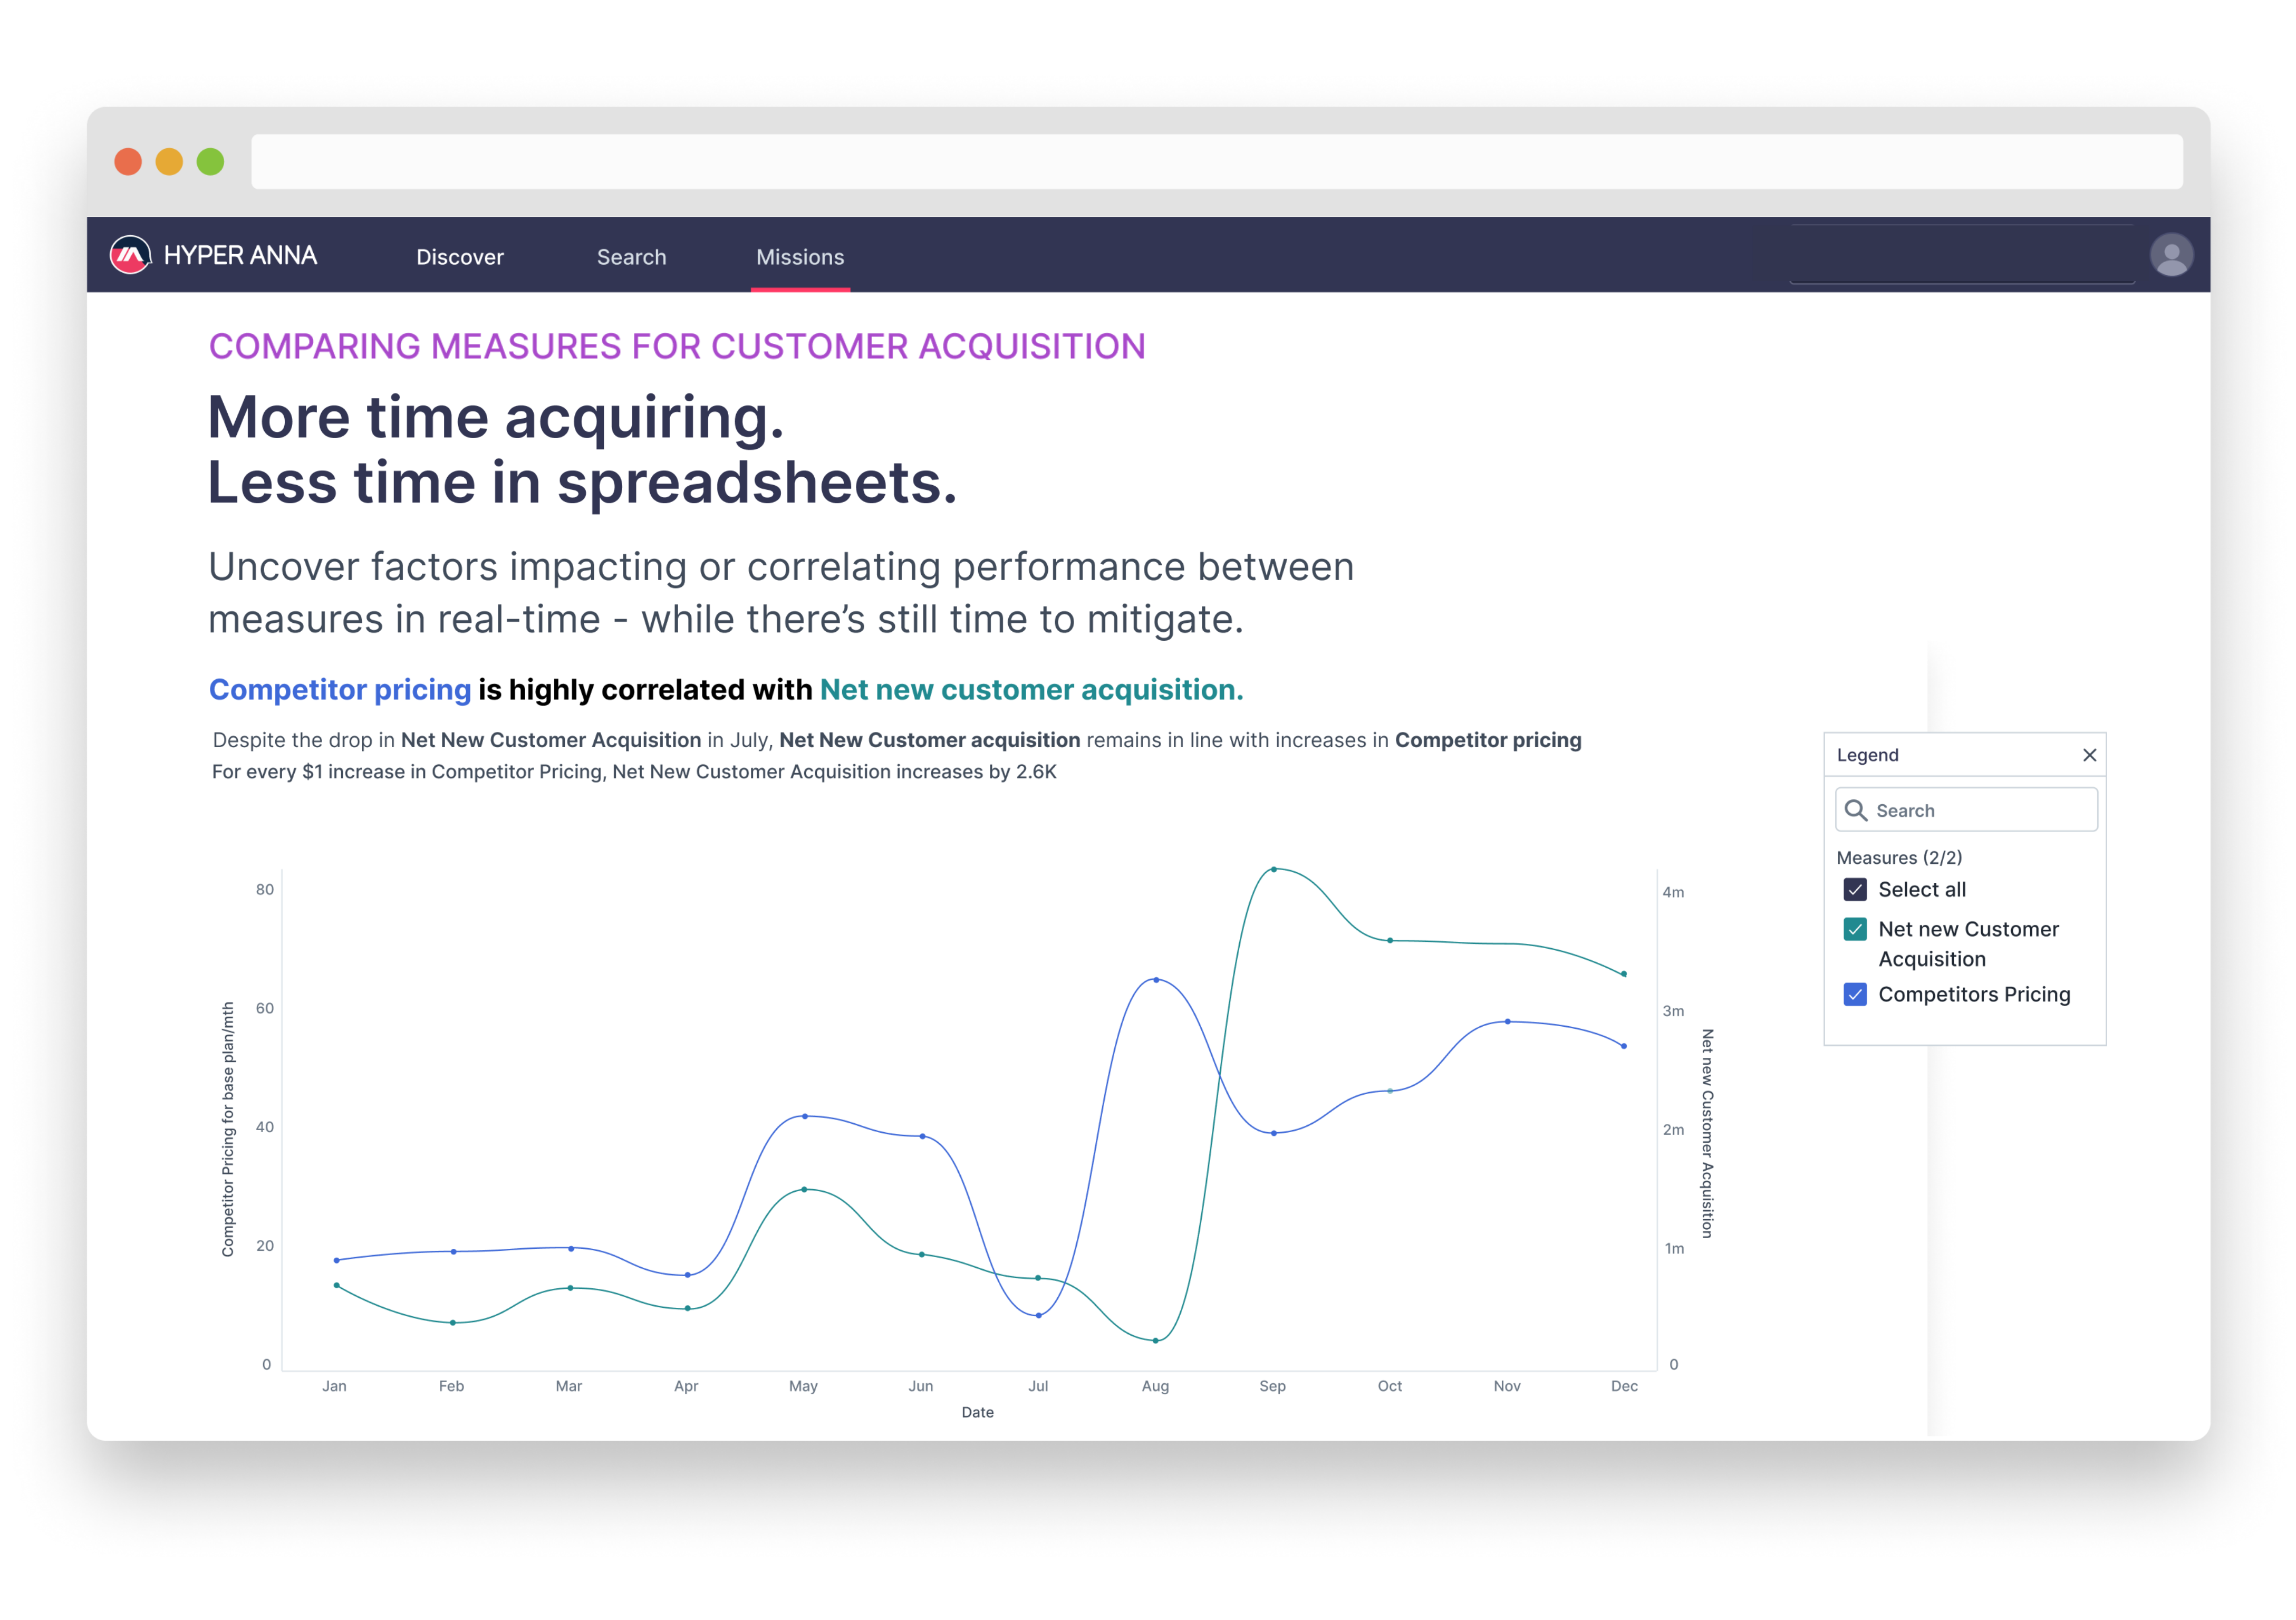 Have more time acquiring. Less time in spreadsheets with Hyper Anna.